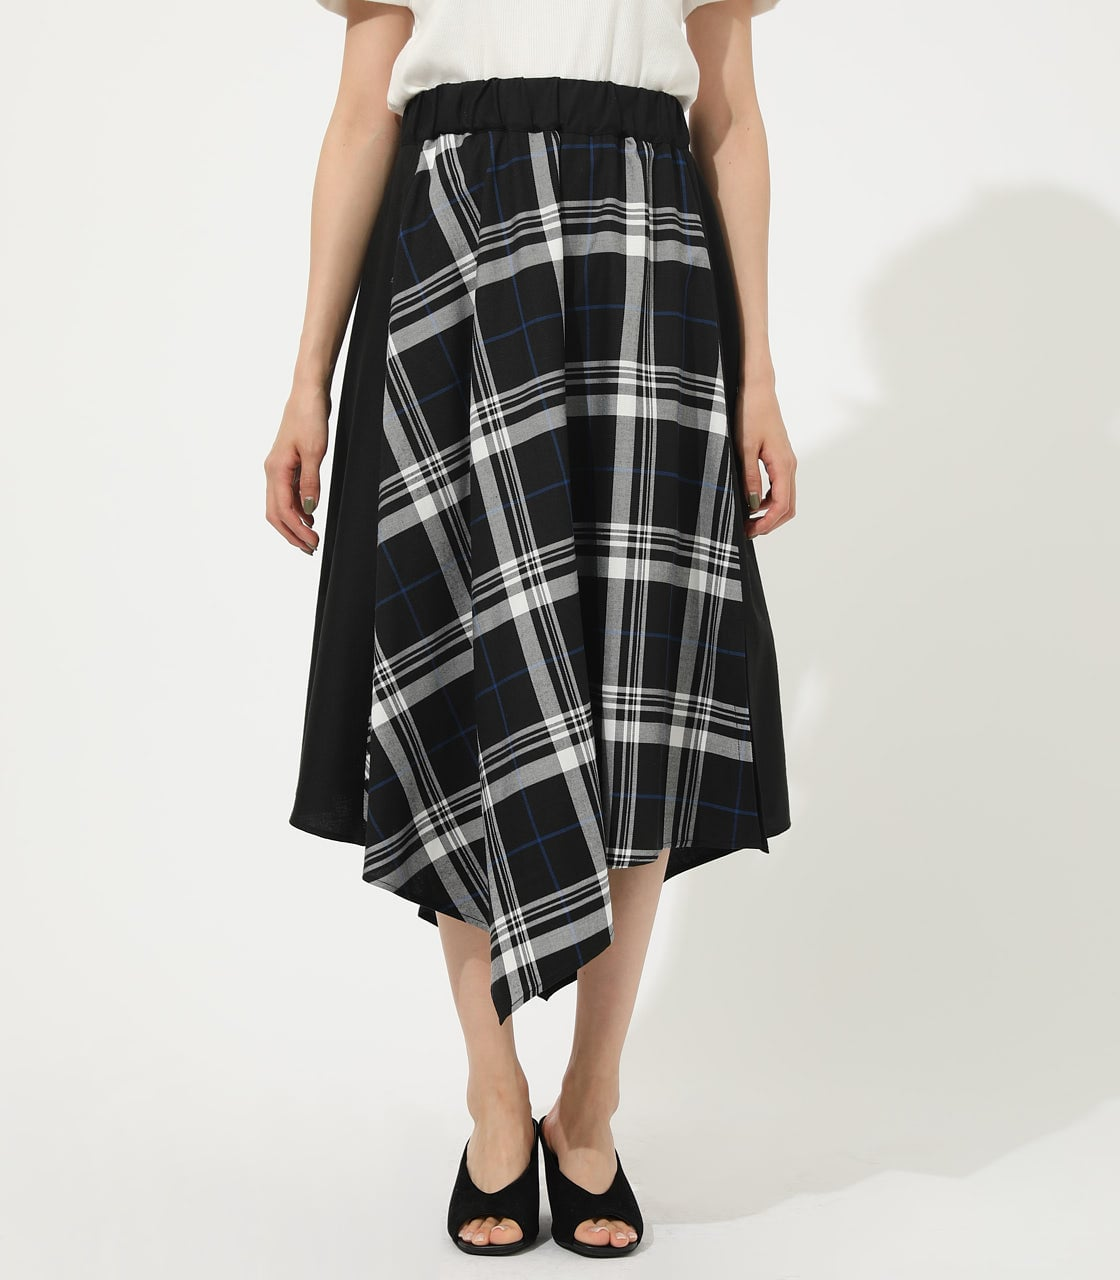 【AZUL BY MOUSSY】CHECK ASYMMETRY PATTERN SKIRT 詳細画像 柄BLK 4